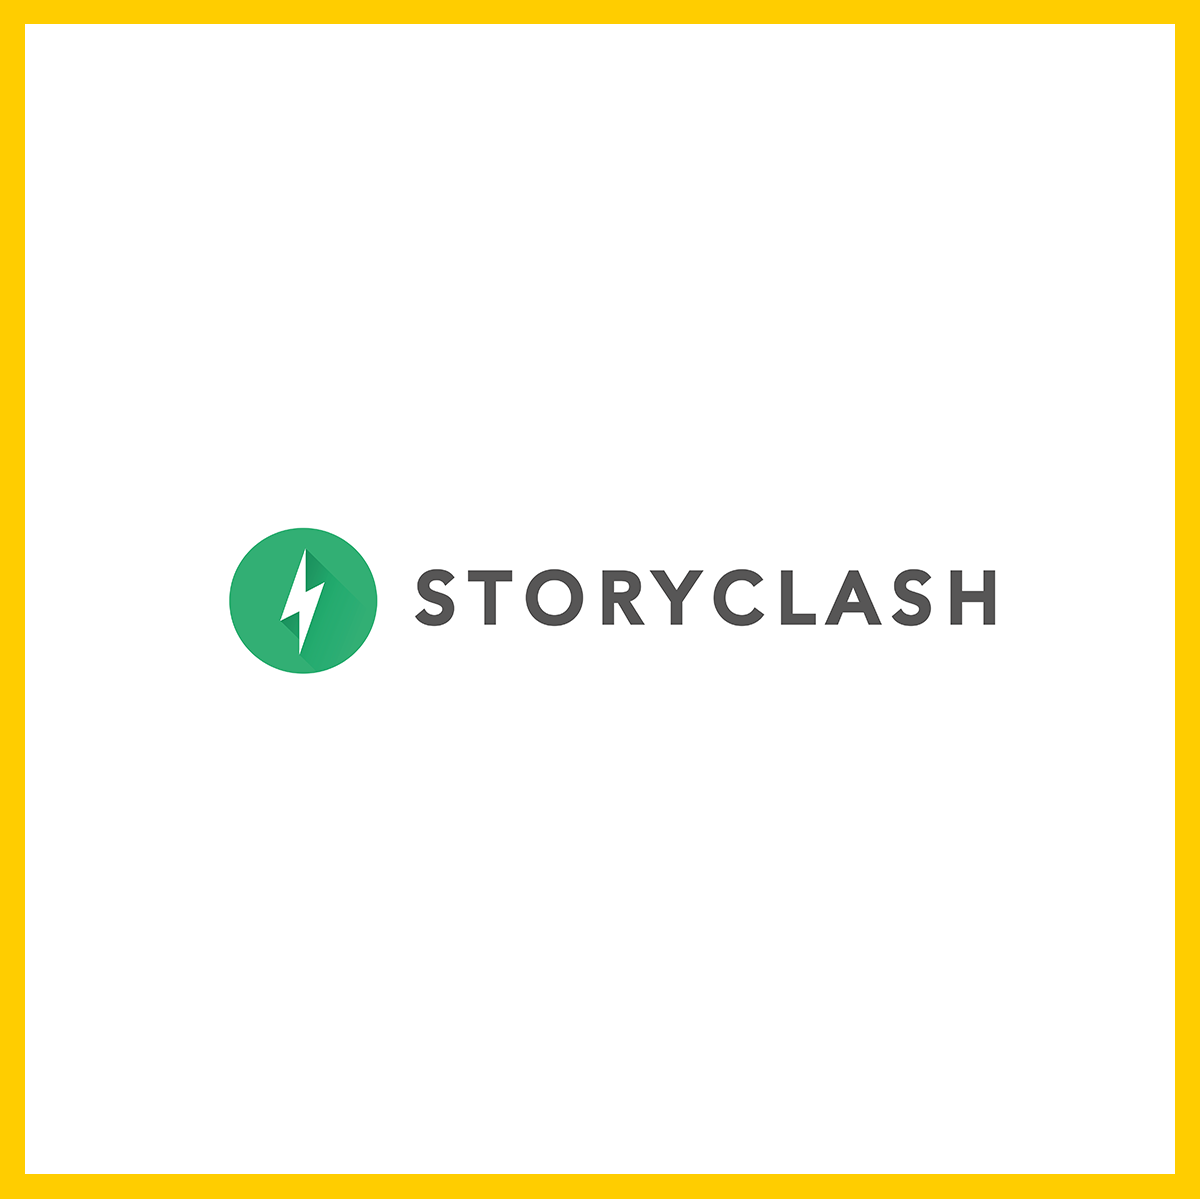 _STORYCLASH. - Storyclash is a social media monitoring solution. Brands, agencies and publishers monitor their brand and competitors, track their owned and earned media and find content trends as well as influencers with Storyclash. Everything in real-time.